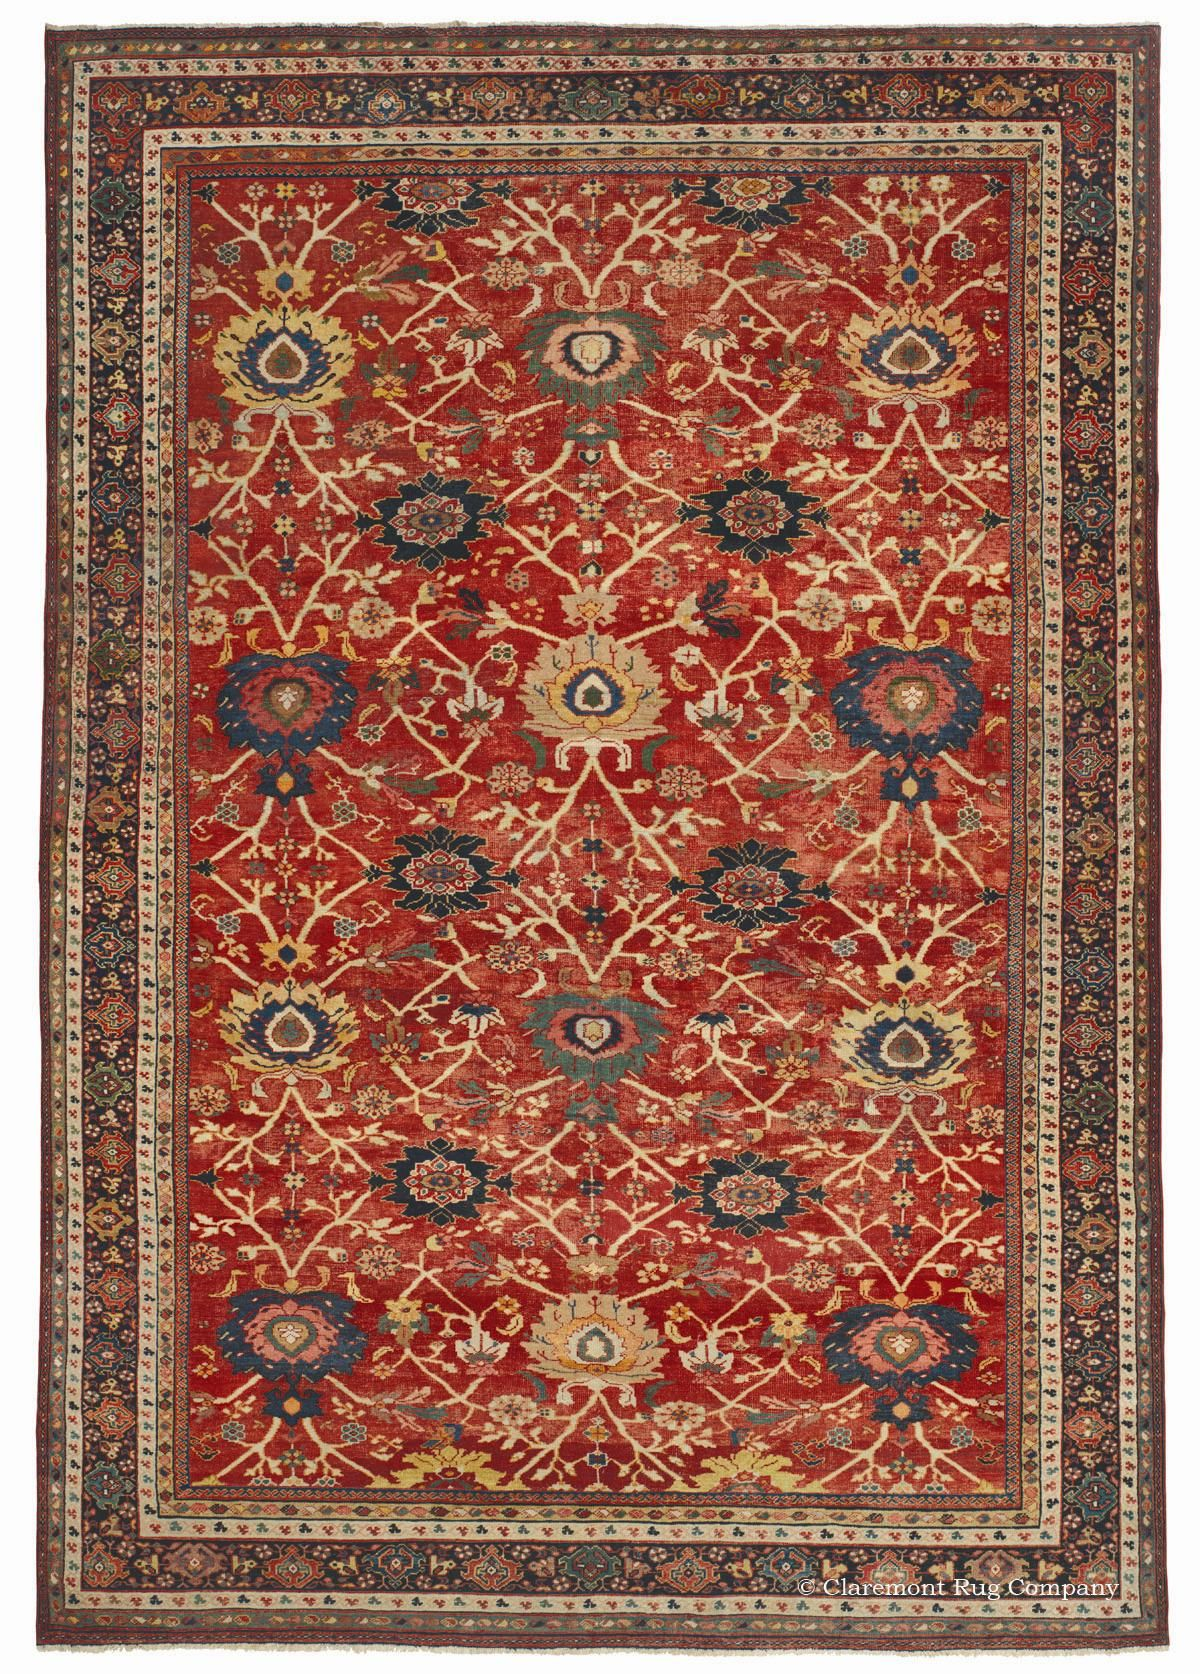 Sultanabad 9ft 2in X 12ft 10in Circa 1875 This Superb High Decorative Antique Carpet From The Persian Sultanabad Rug Sty Rugs Rugs On Carpet Antique Carpets